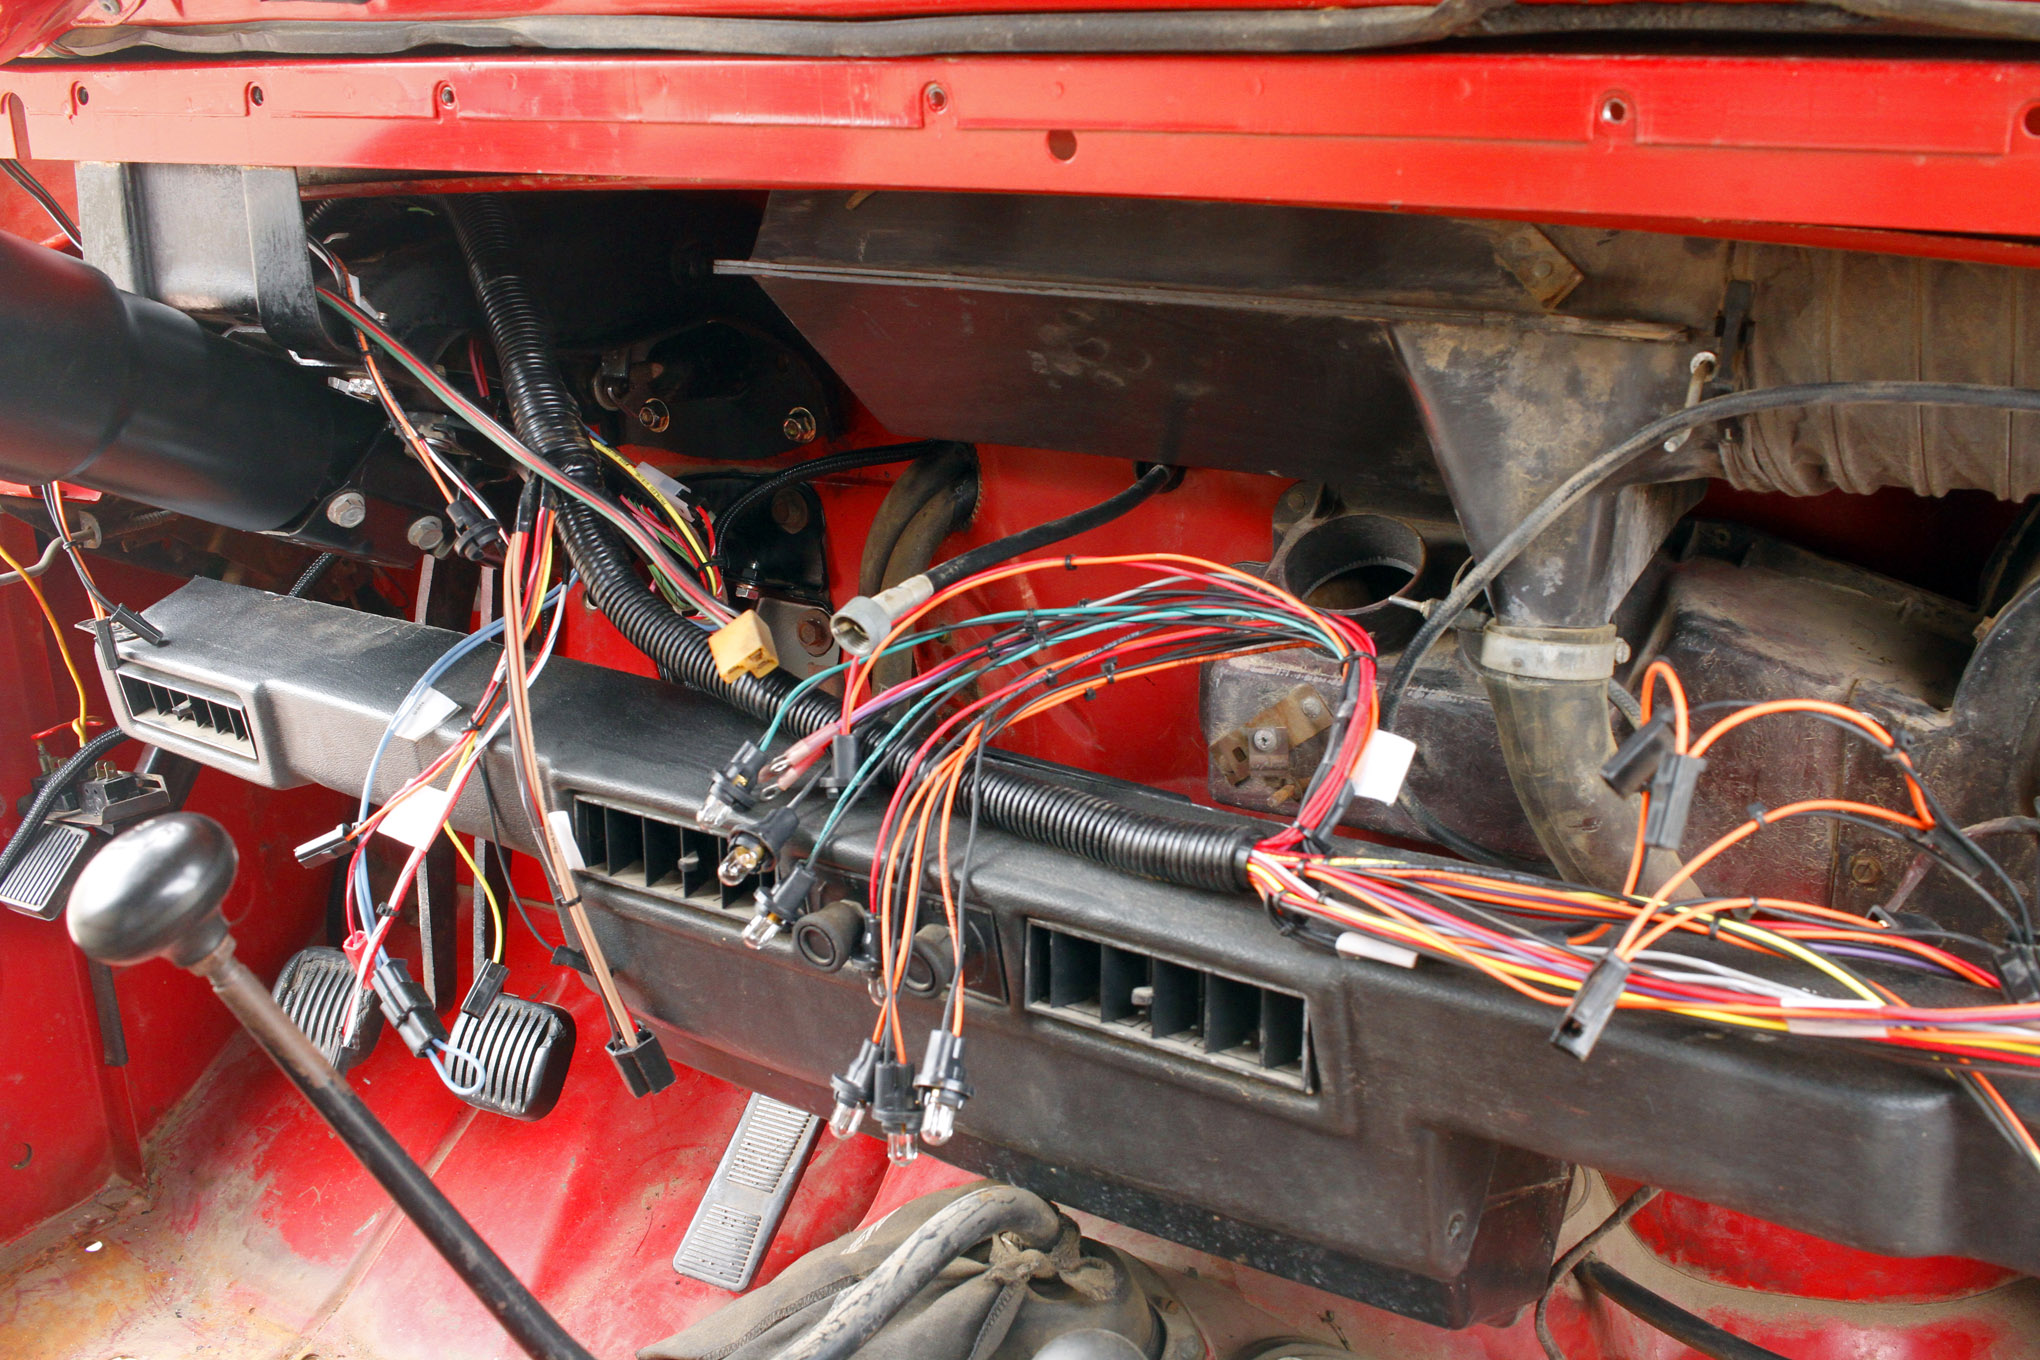 cj7 dash wiring harness route wiring diagram Subaru Wiring Harness cj7 dash wiring harness route